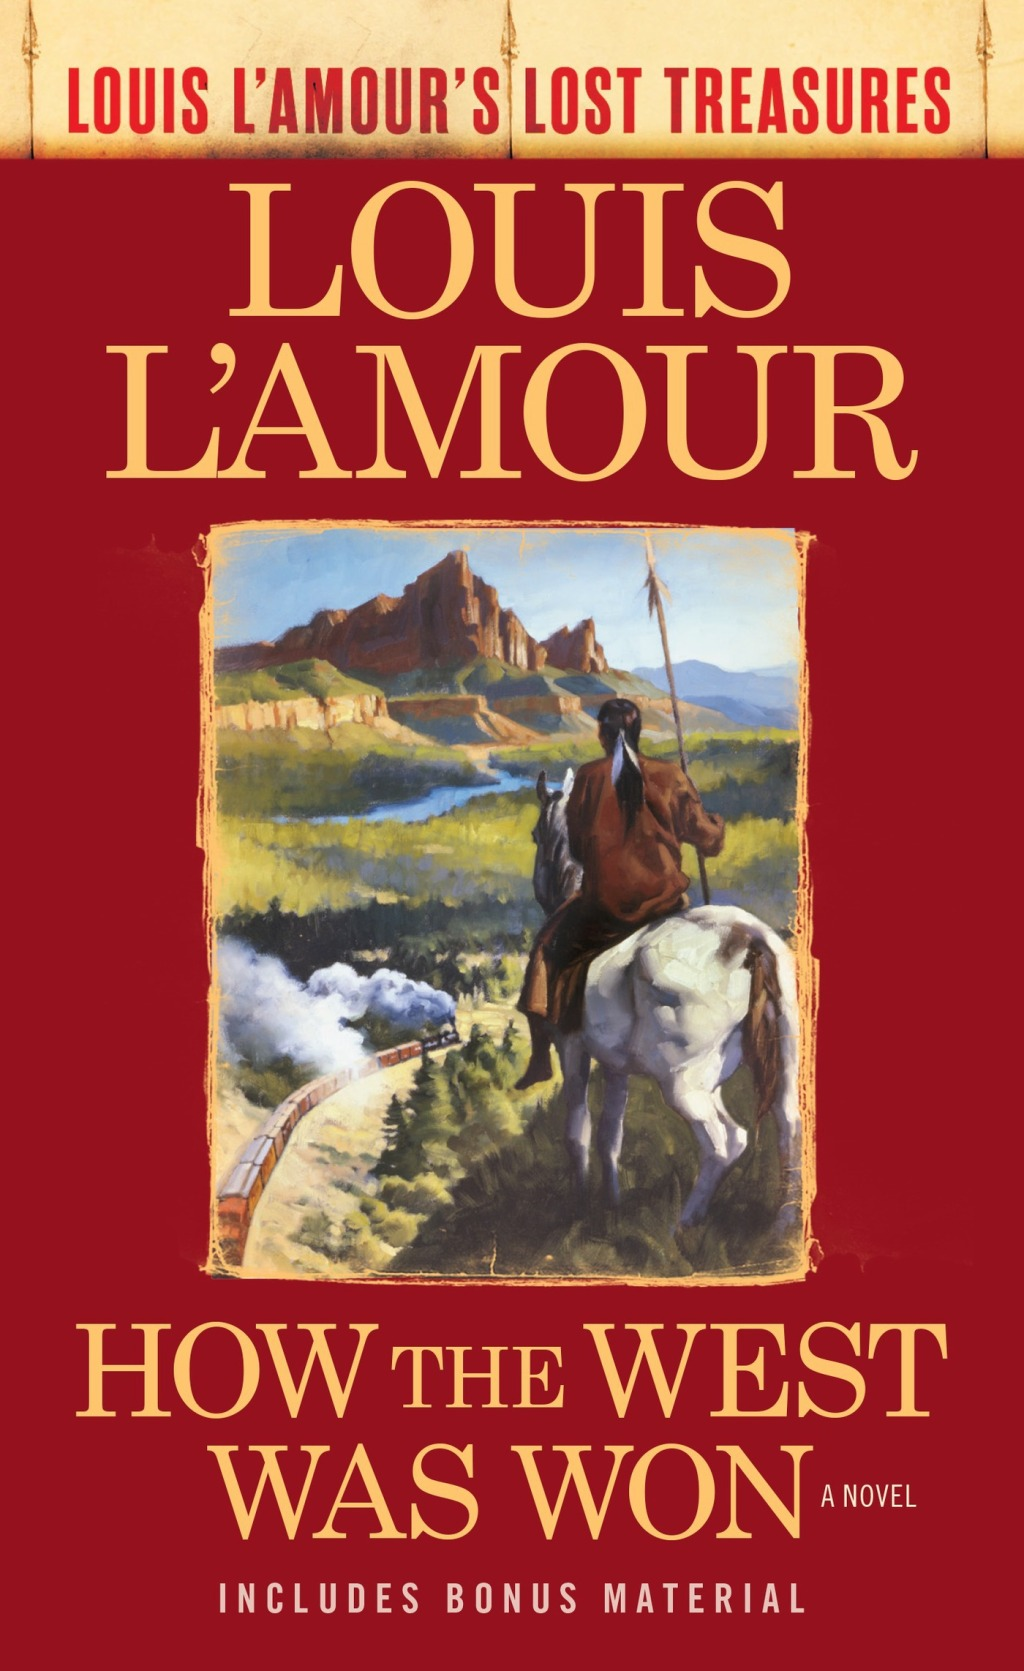 How the West Was Won (Louis L'Amour's Lost Treasures) (ebook) eBooks